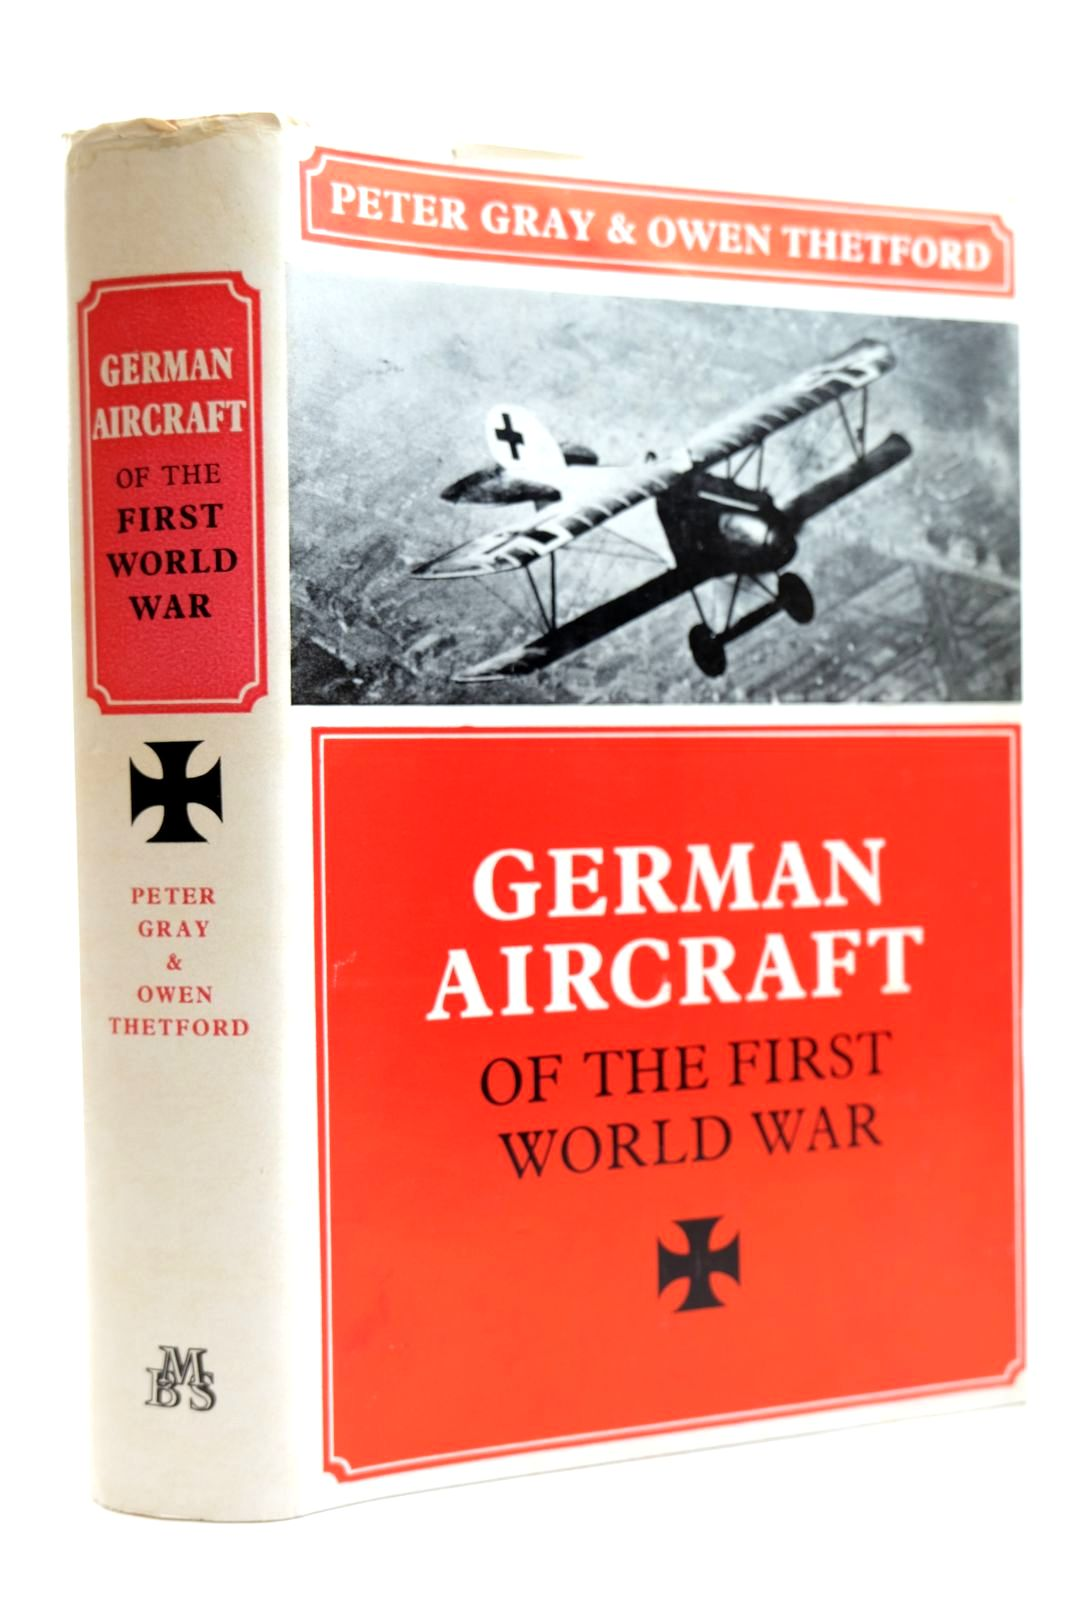 Photo of GERMAN AIRCRAFT OF THE FIRST WORLD WAR written by Gray, Peter Thetford, Owen published by Military Book Society (STOCK CODE: 2131917)  for sale by Stella & Rose's Books